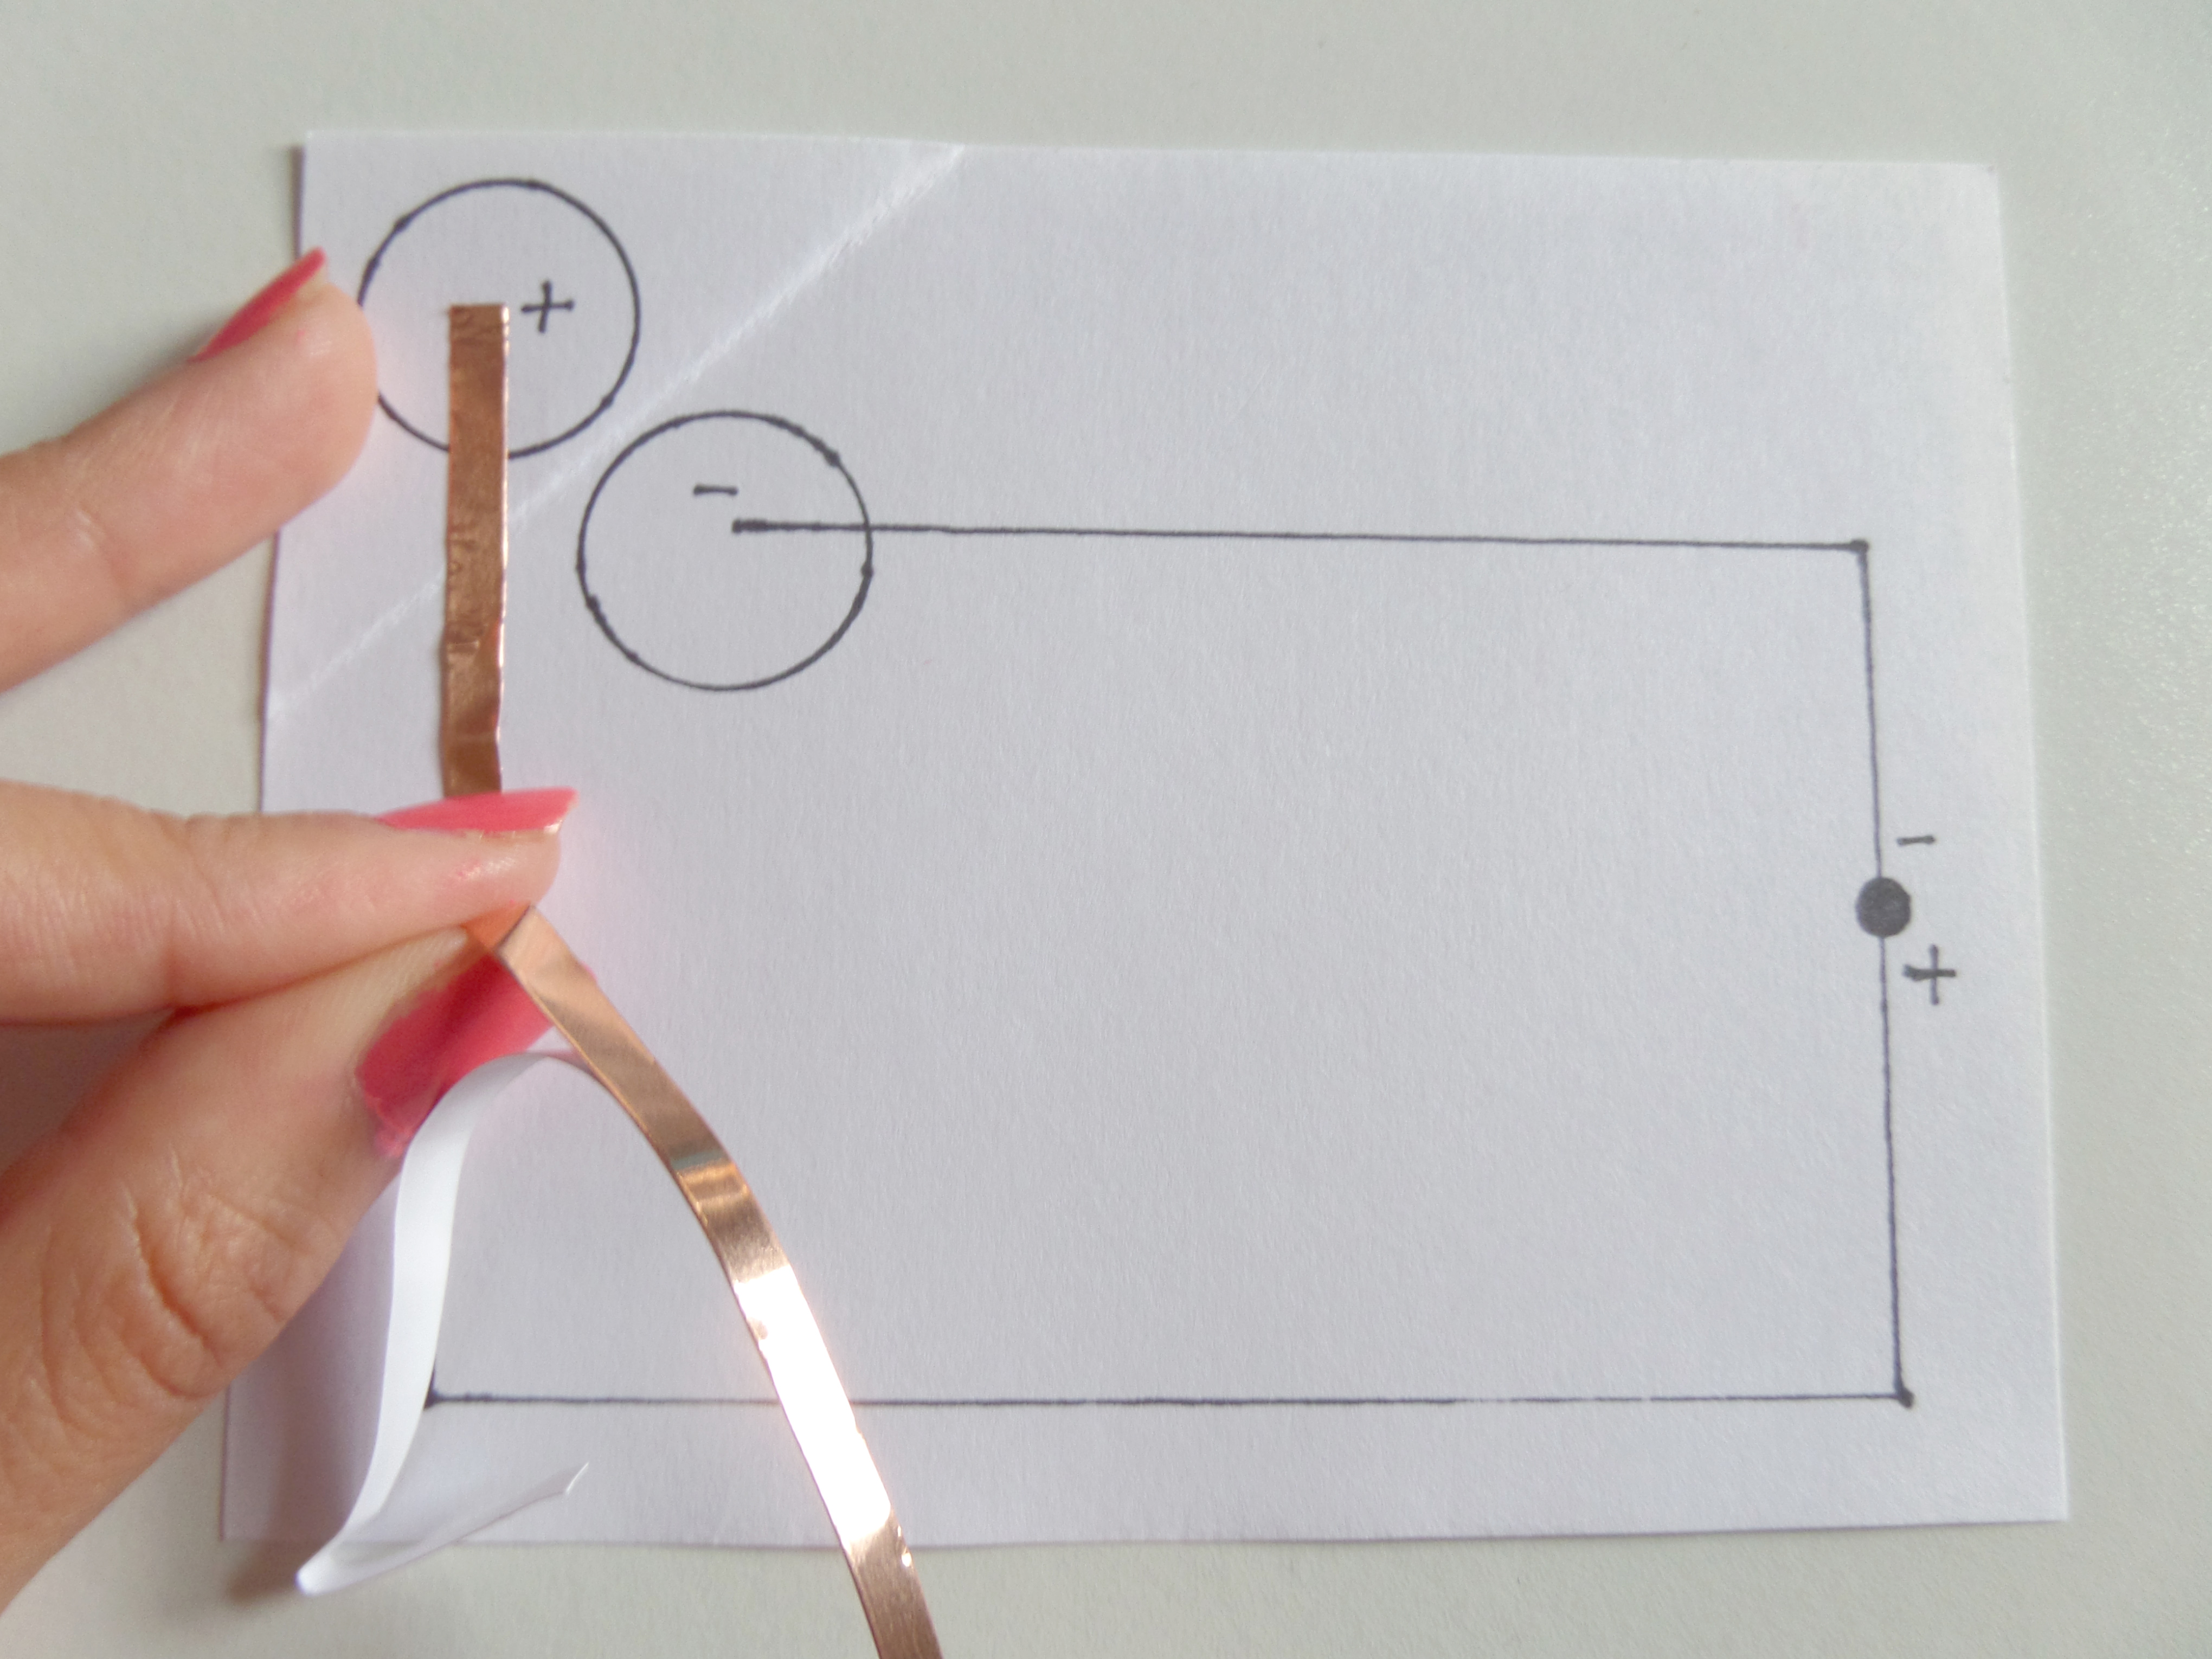 Light It Up Maker Camp Drawing Of A Simple Circuit With Bulb Cell And The Switch So Follows Lines In Diagram To Make Turns Tape Until You Reach Corner Where Want Turn Then Fold